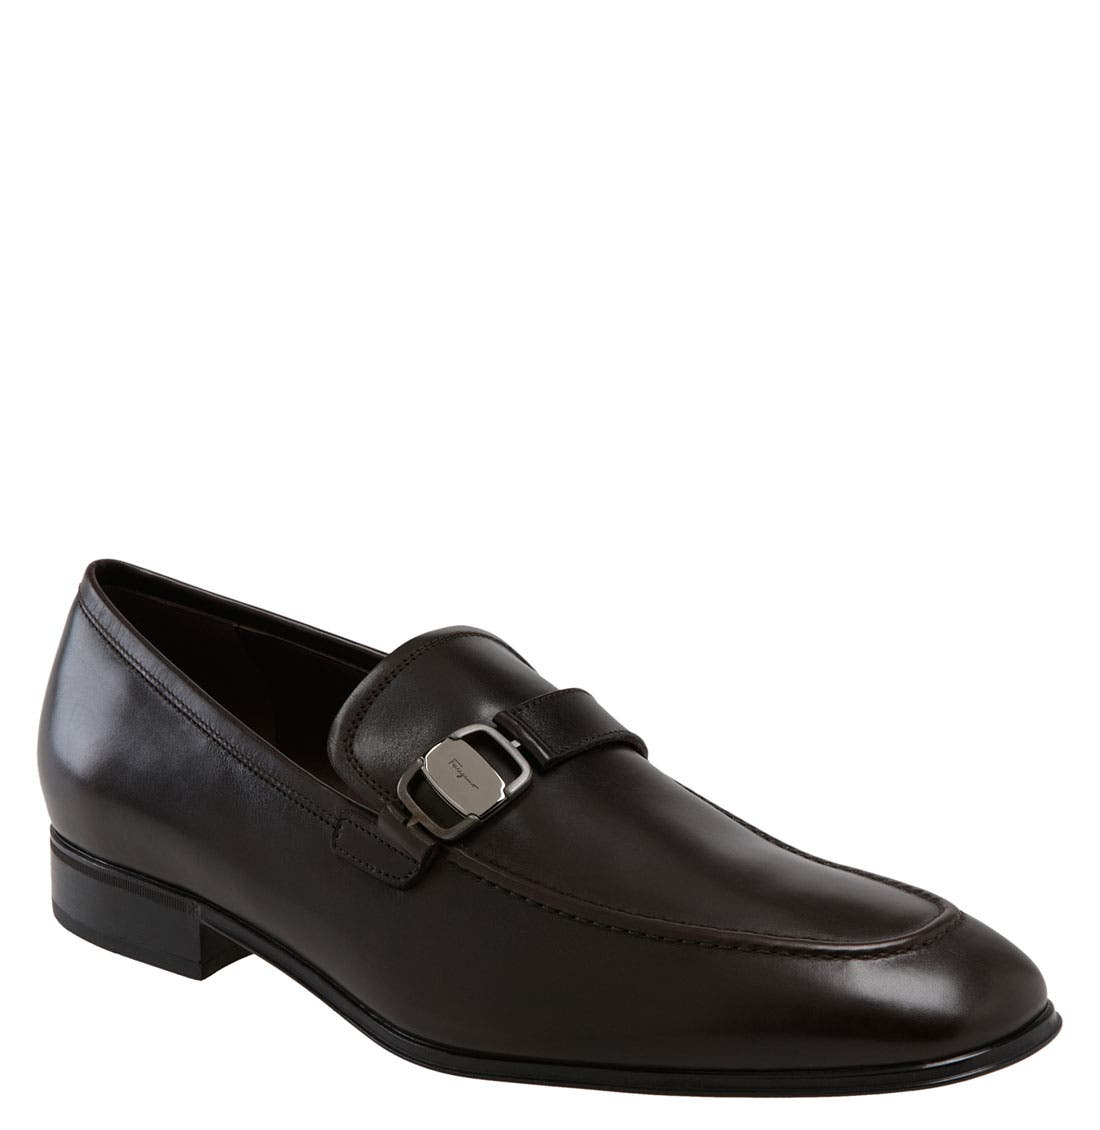 Alternate Image 1 Selected - Salvatore Ferragamo 'Francisco' Loafer